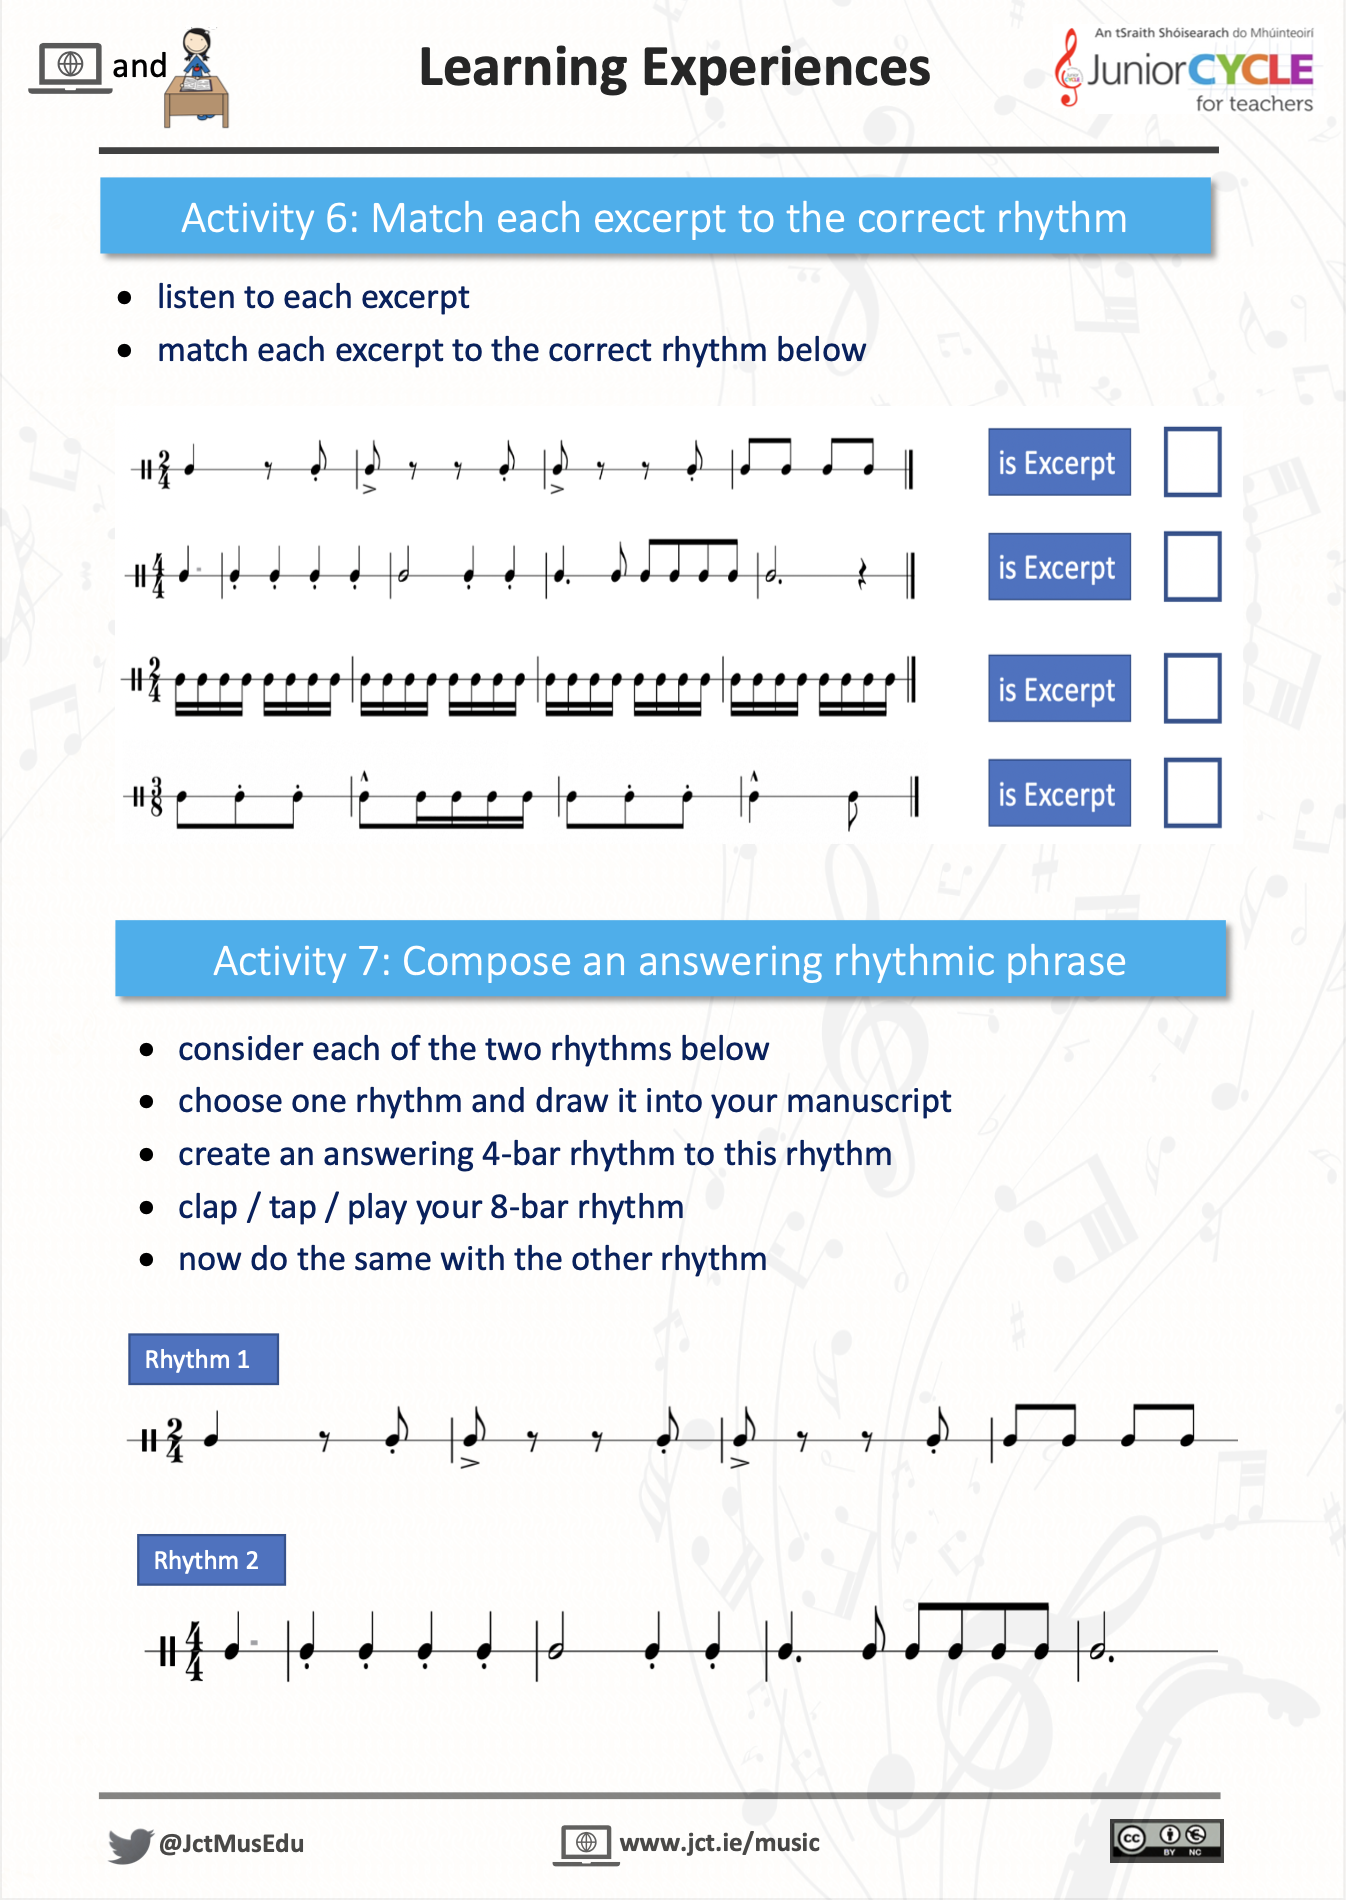 Online Learning Creating Music - Activity 6 & 7 PDF